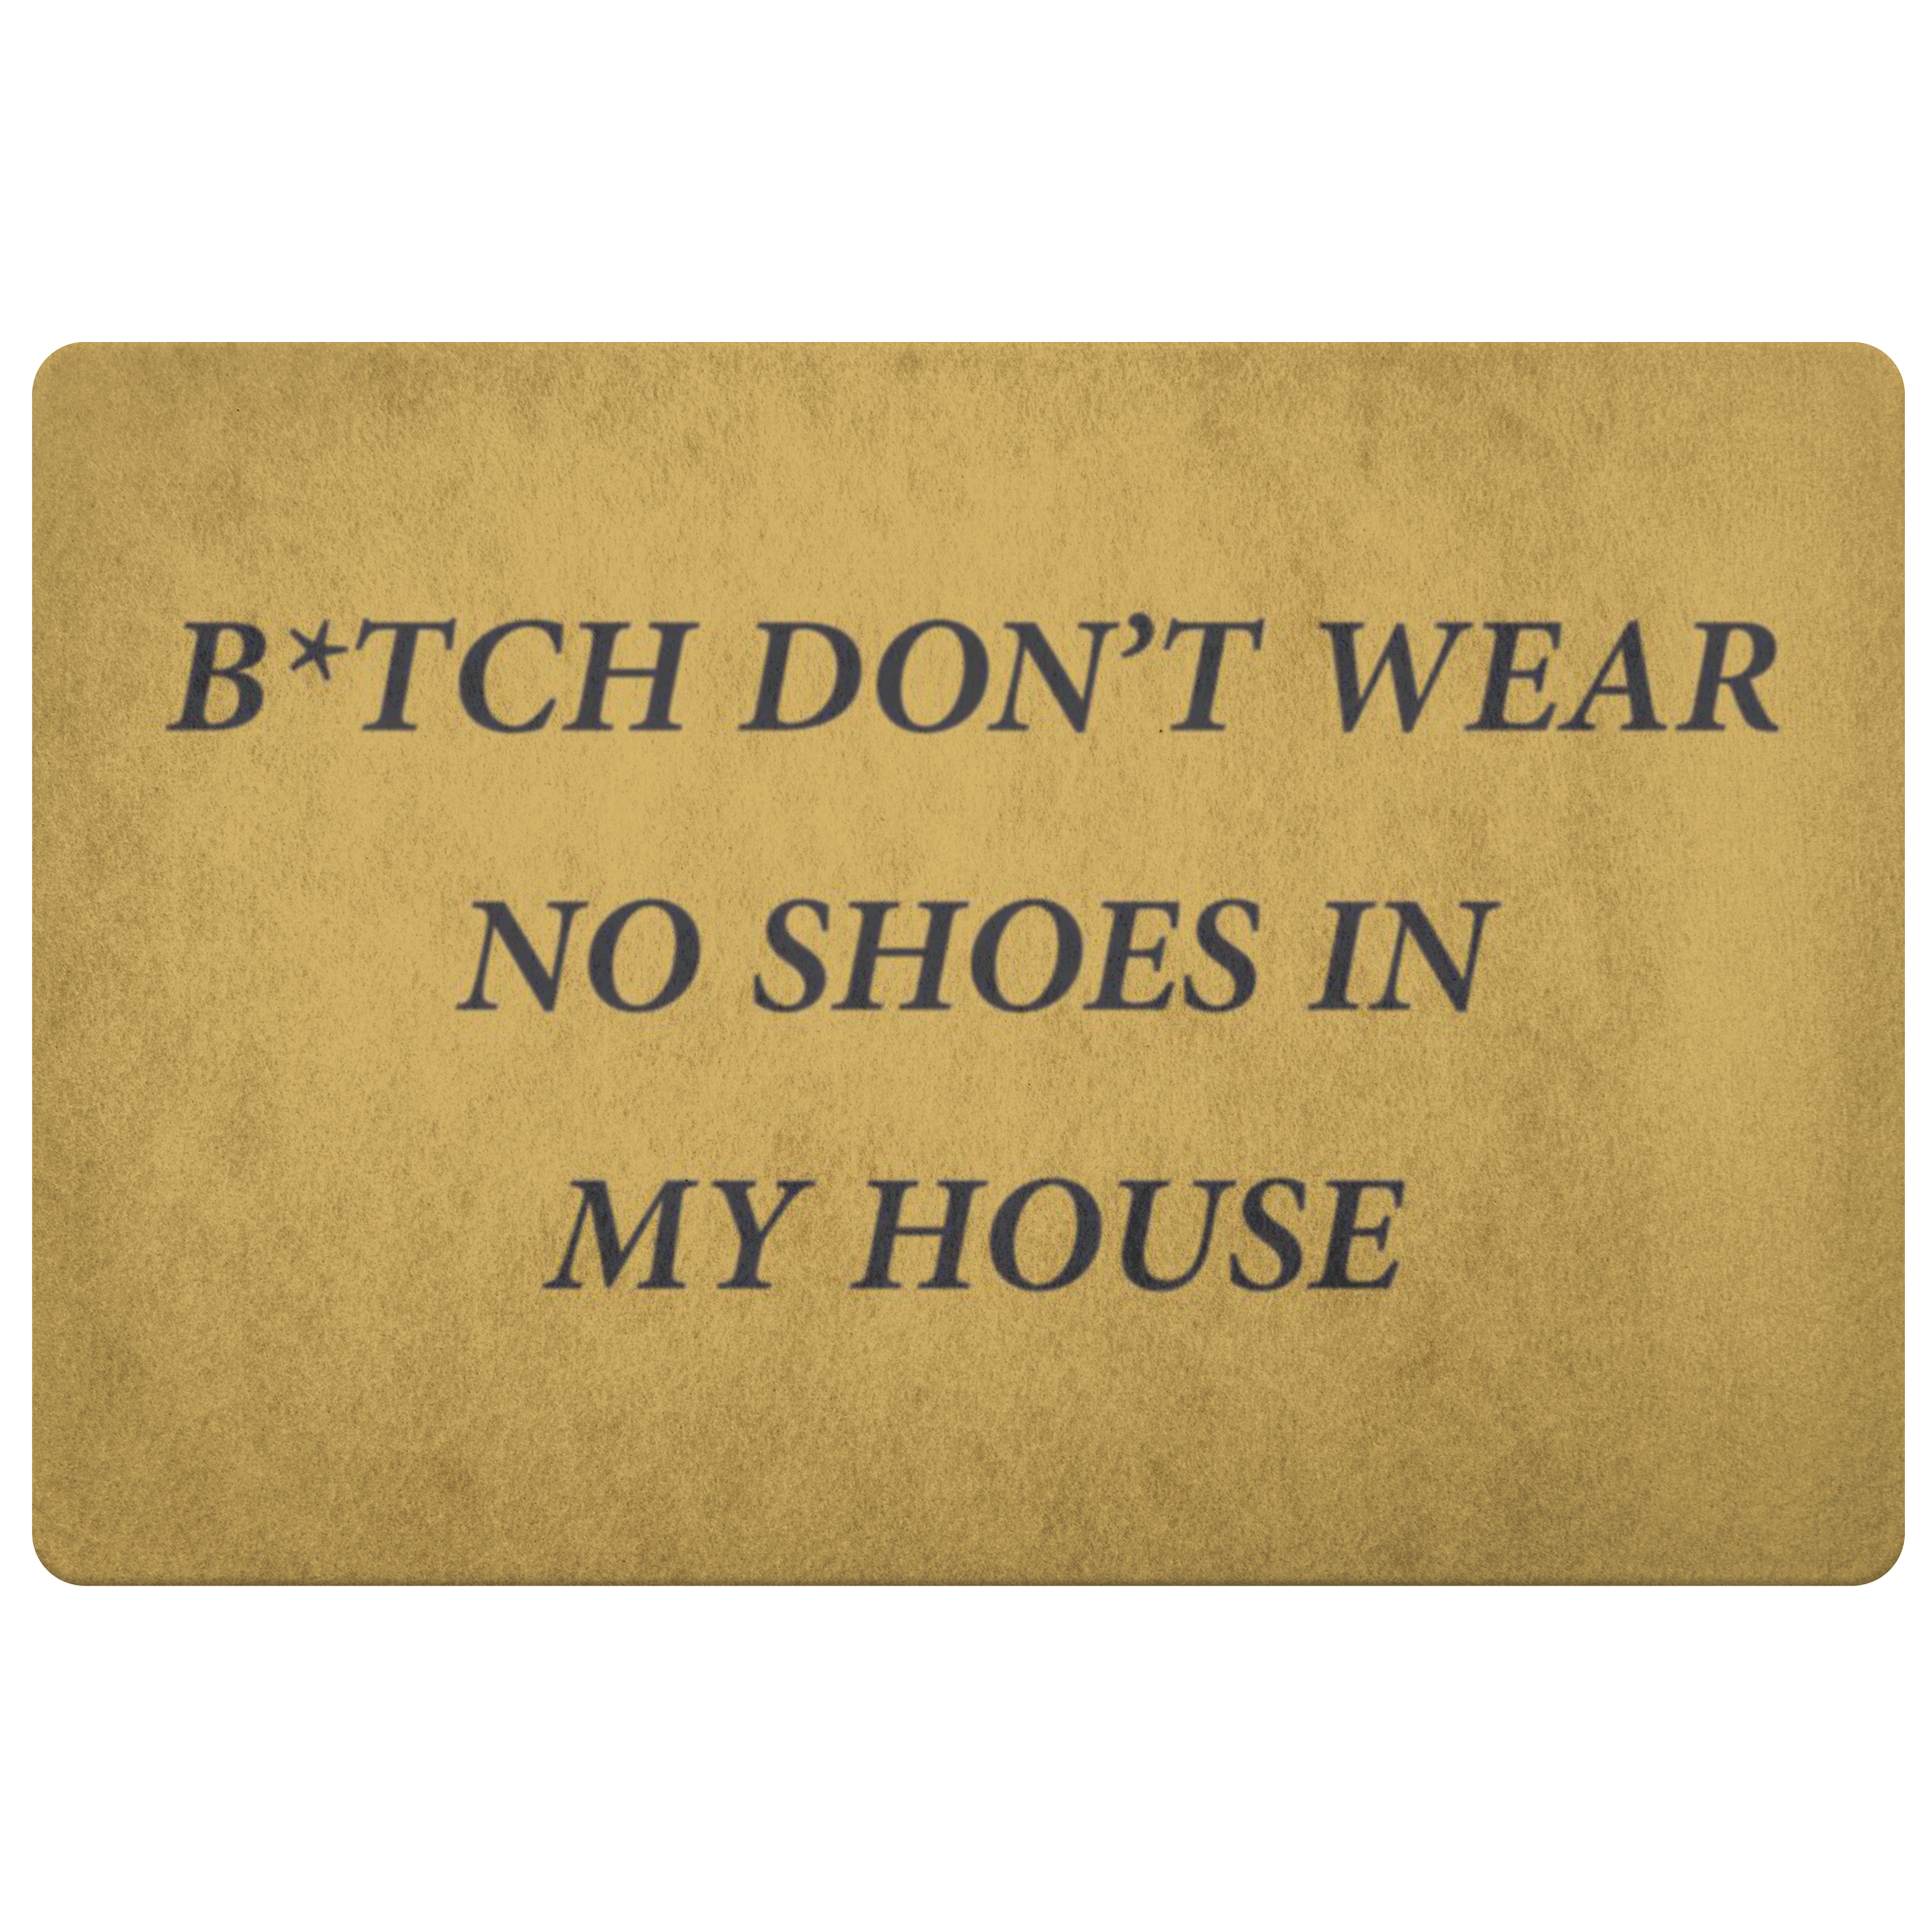 B*tch don't wear No shoes In My House Doormat